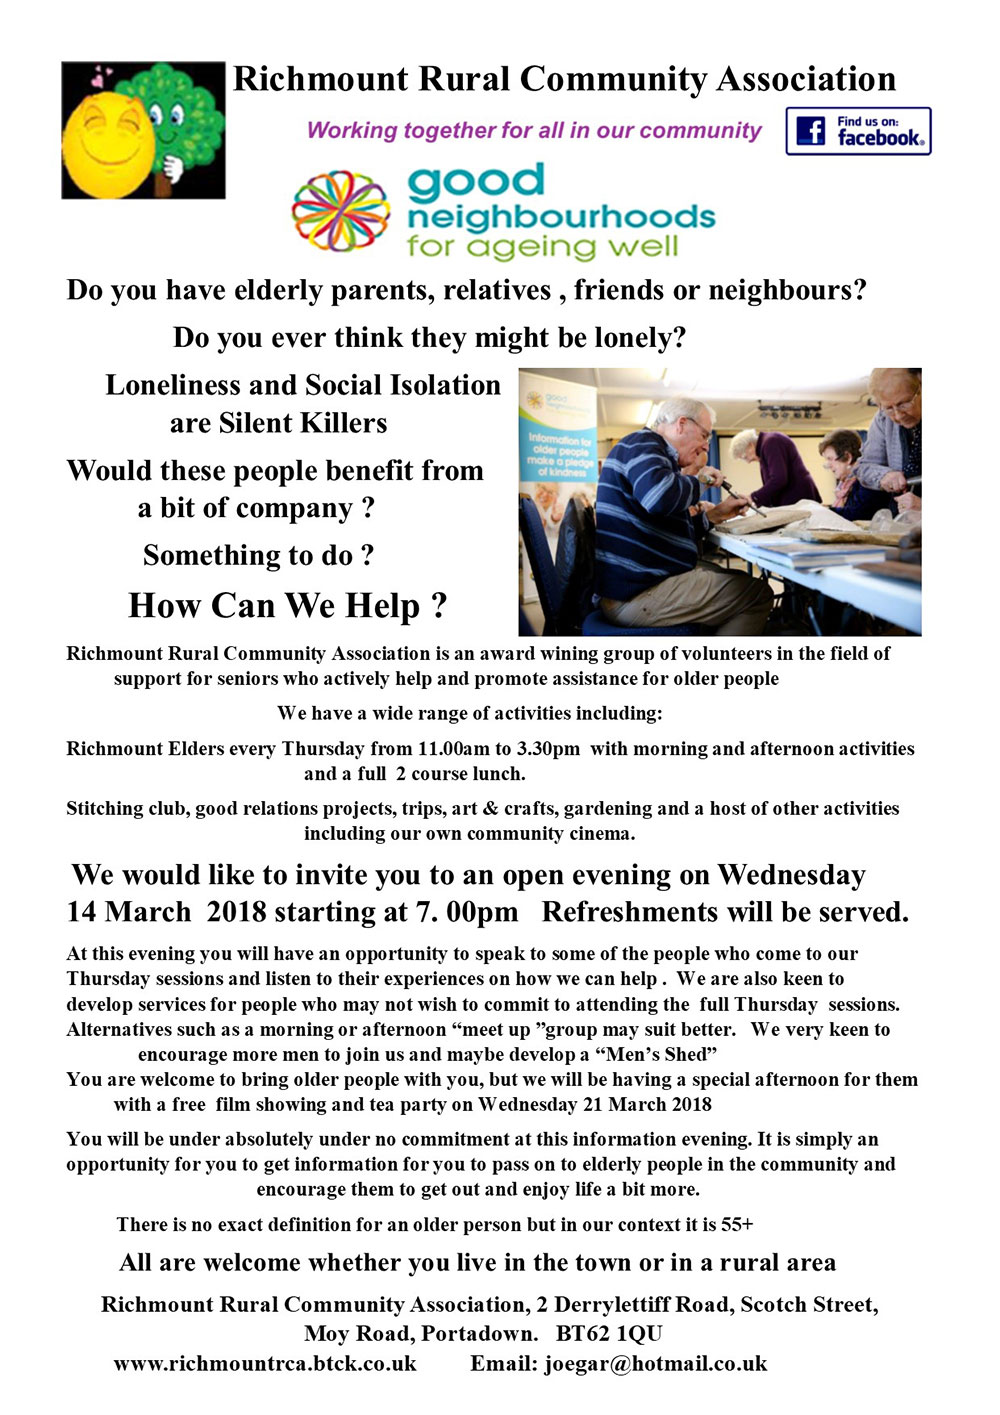 Older People Open Evening 14 Mar 18